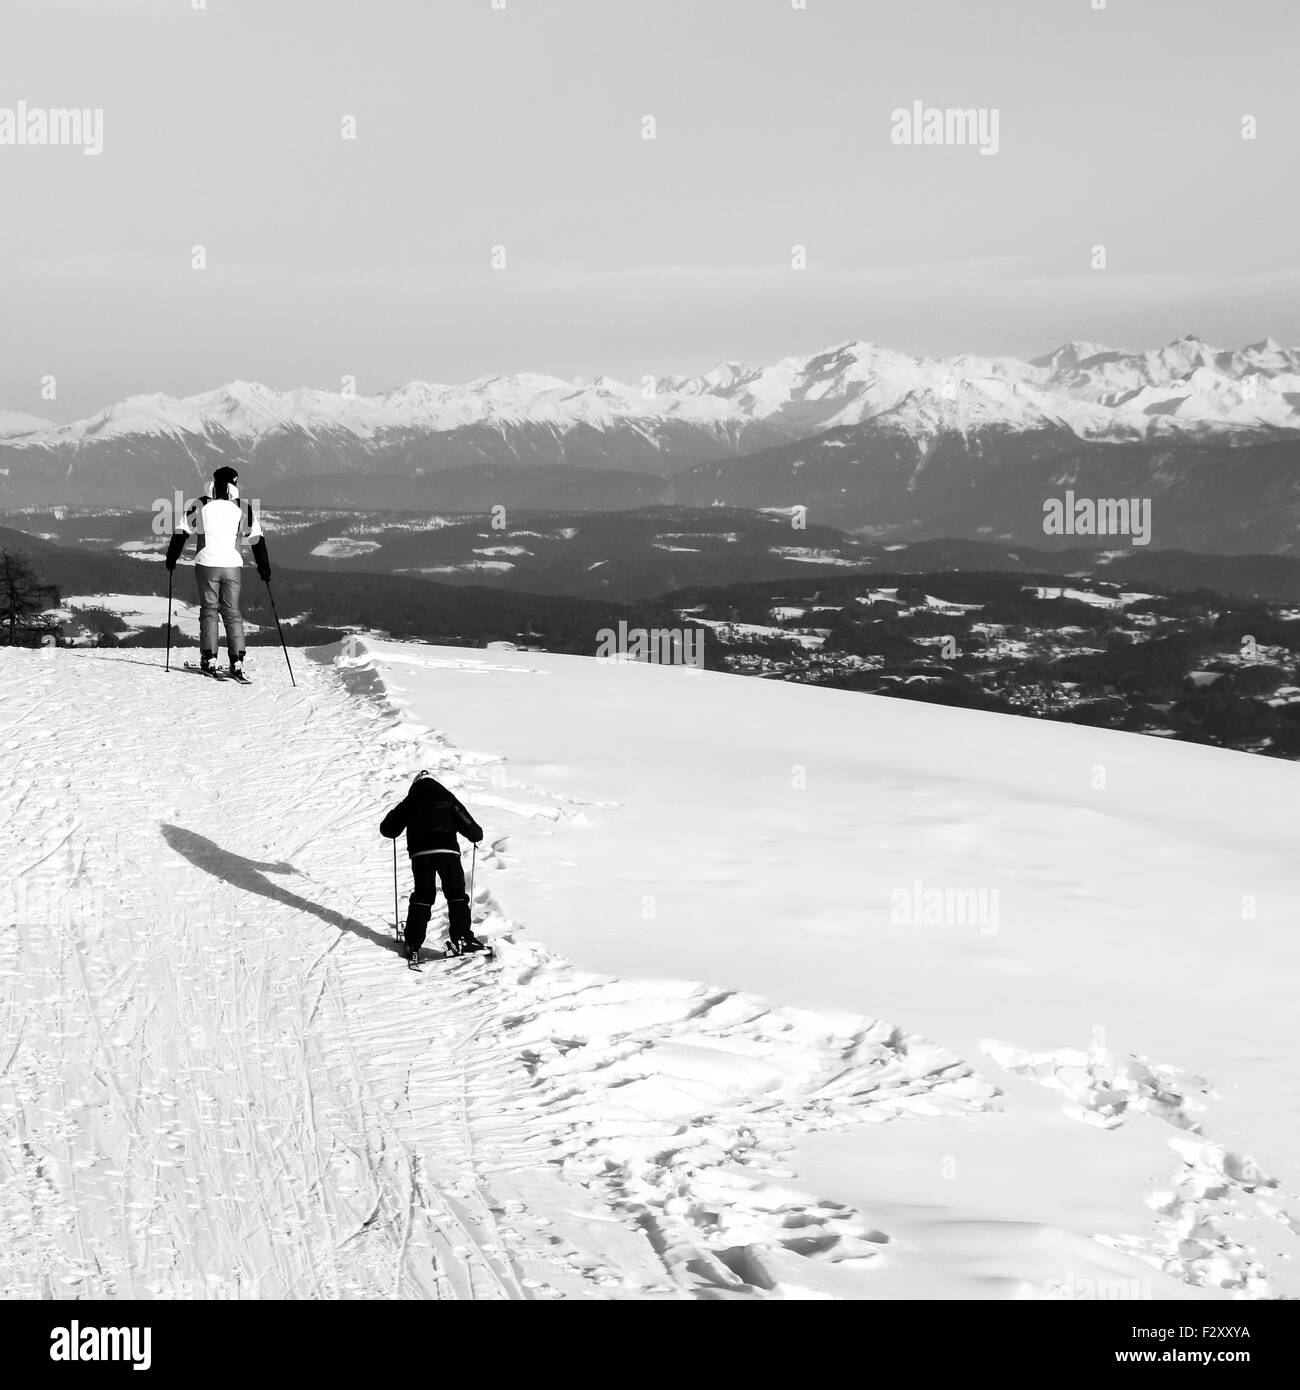 ORTISEI, ITALY - CIRCA DECEMBER 2012: Father and son skiing on the snowy slopes of the Alps. - Stock Image